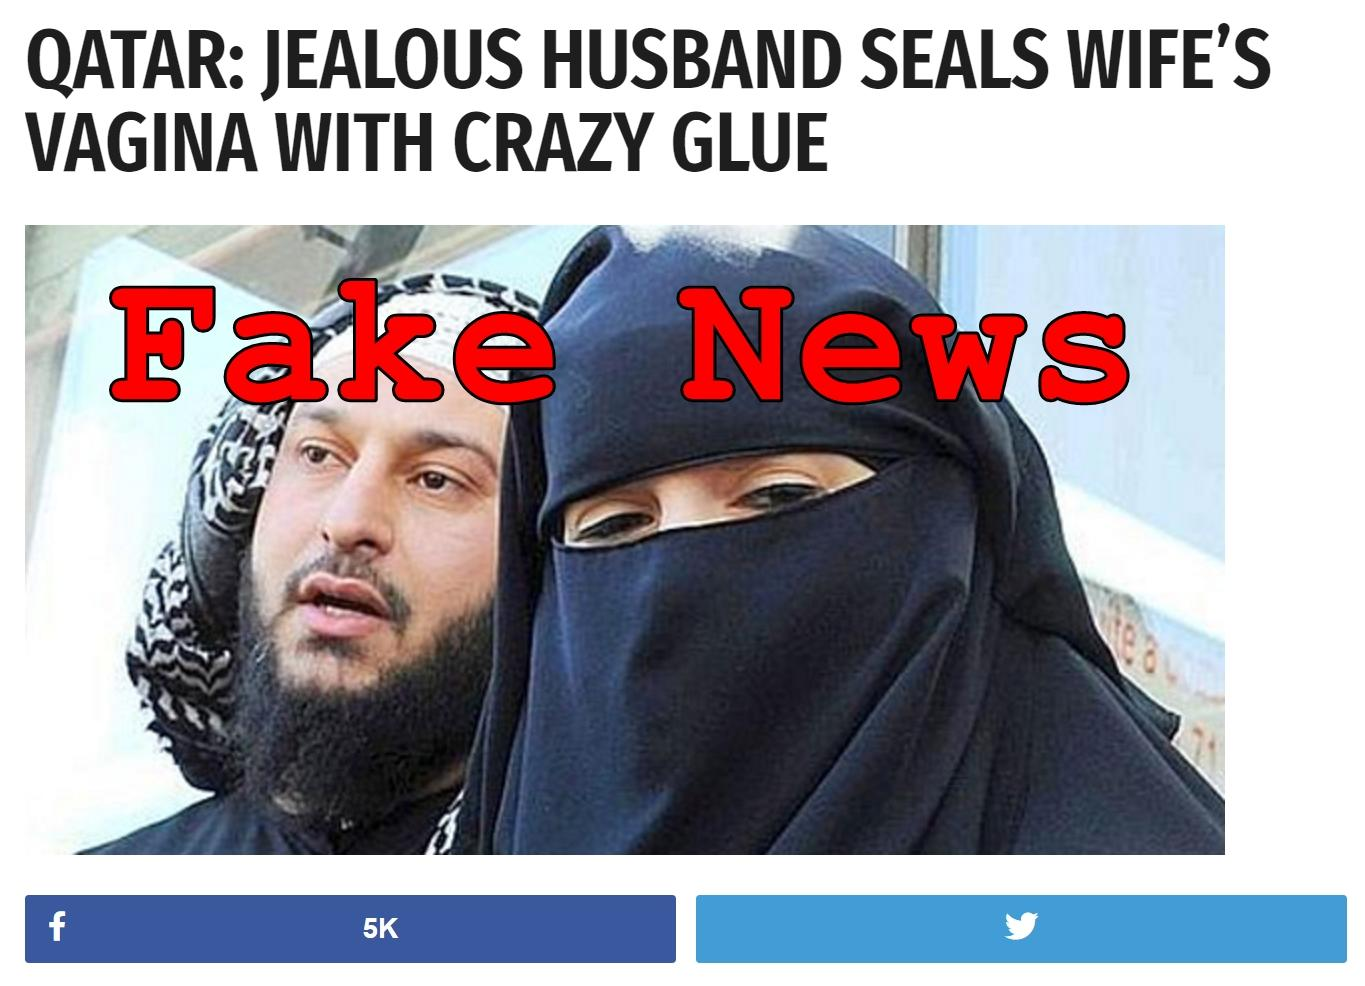 Fake News: Jealous Husband in Qatar Did NOT Seal Wife's Vagina With Crazy Glue